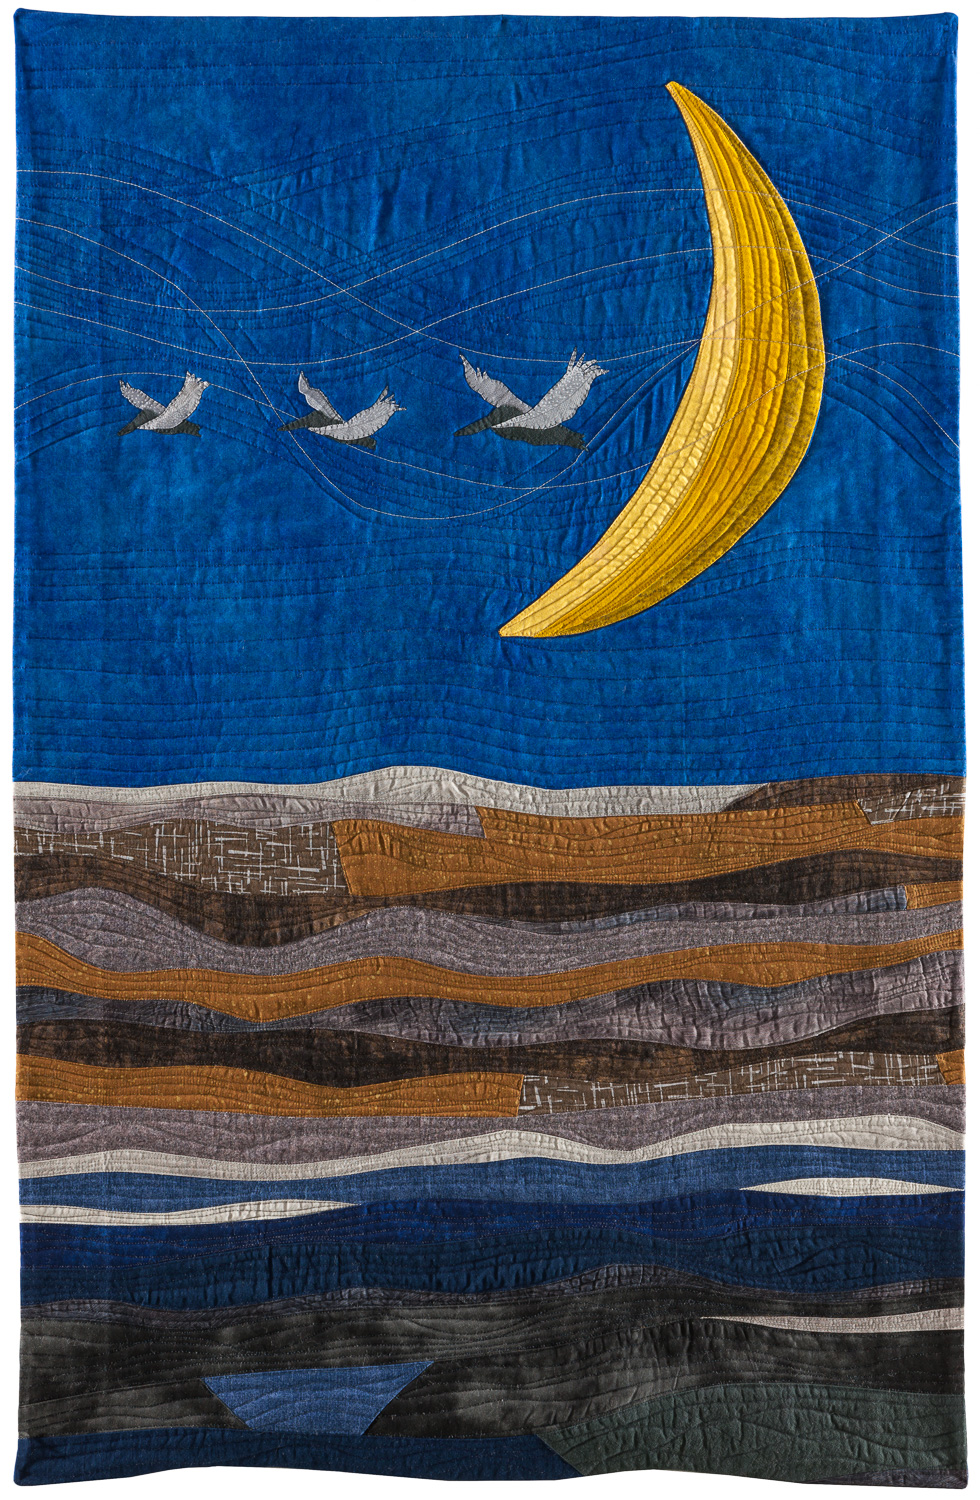 Pajaro by Moonlight-SOLD